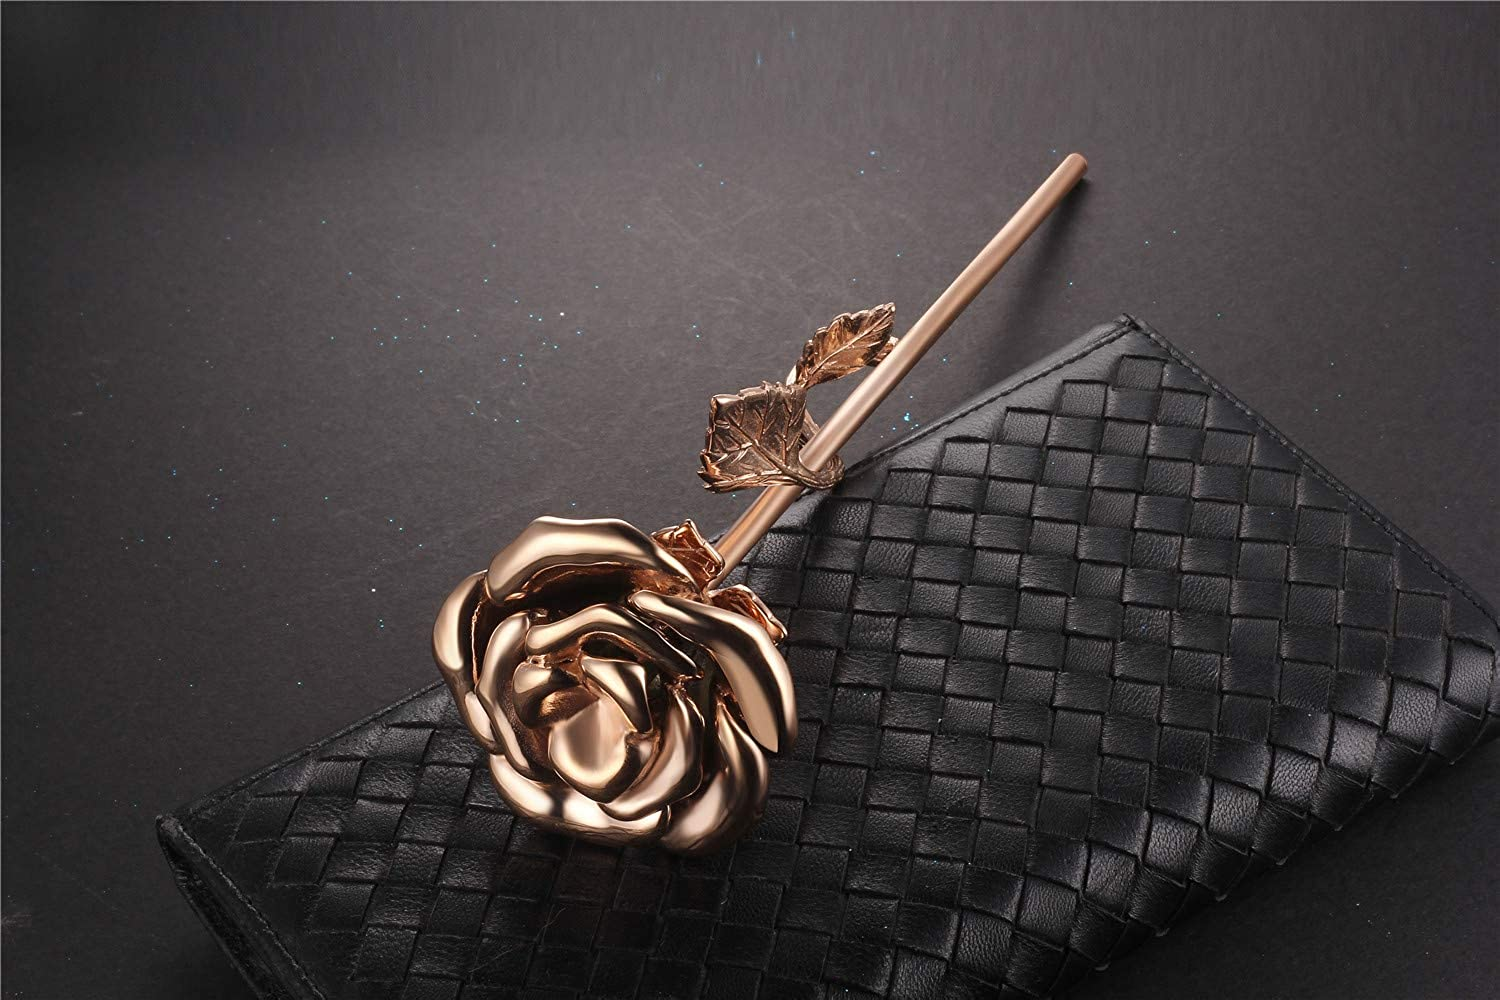 Murinsar Solid Stainless Steel Decorative 3D Rose Flower Branch Cremation Urns for Ashes Human Pet Dog Cat Memorial Keepsake Funeral Ash Container Vessel Decor,Gold,Rose Gold,Silver